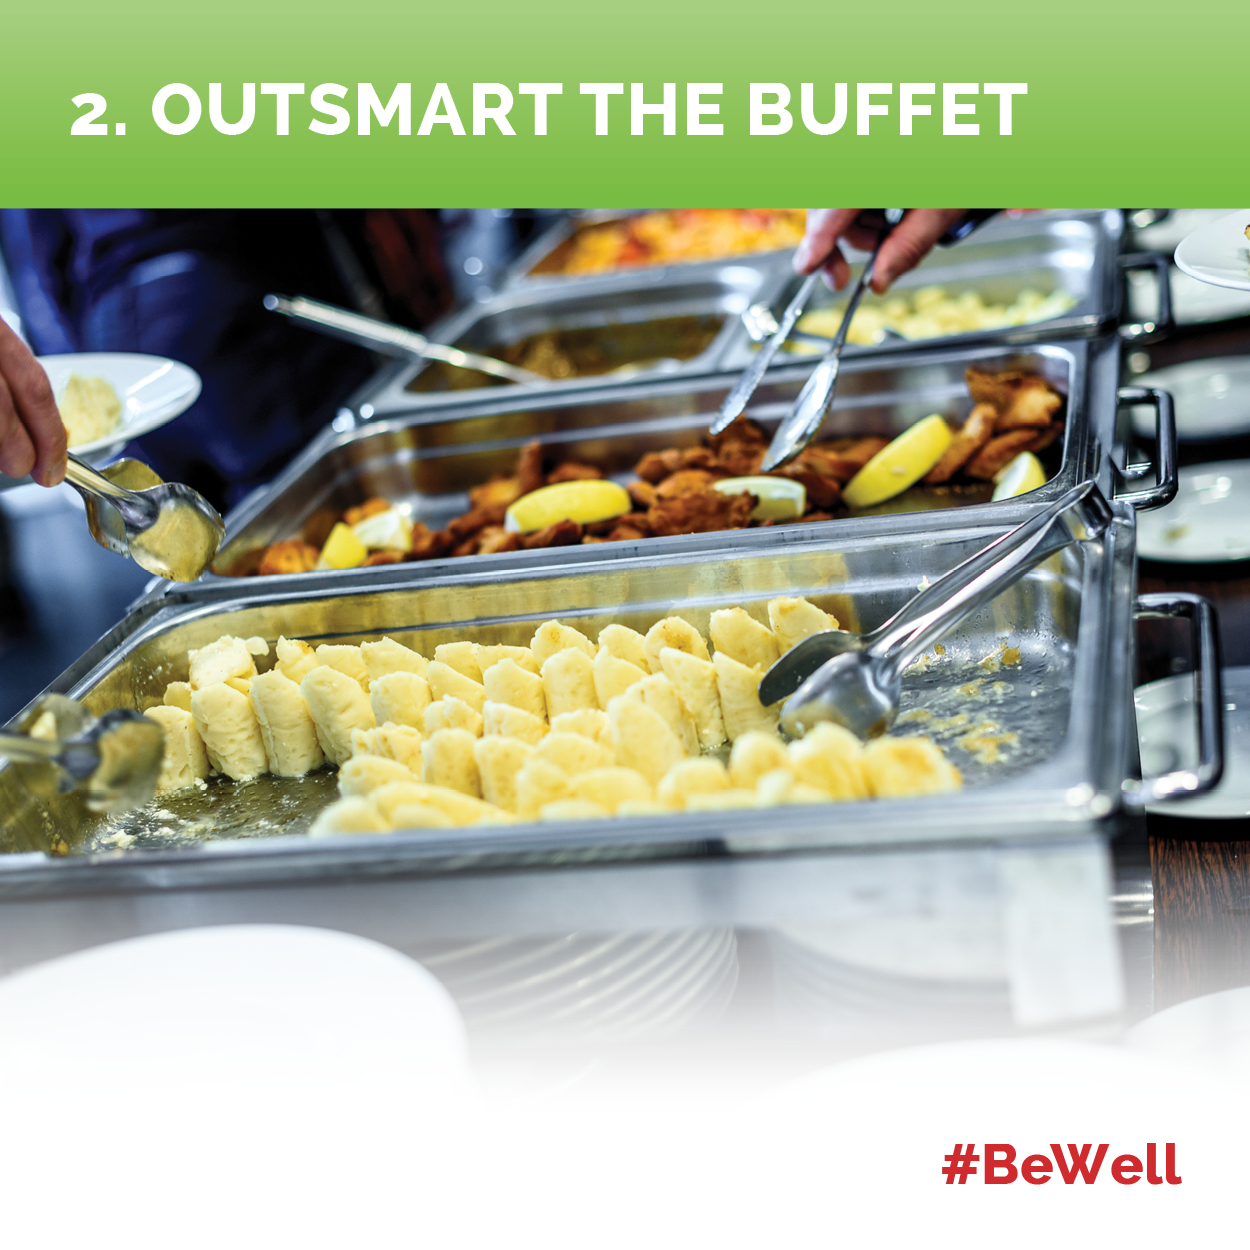 2. Outsmart the Buffet